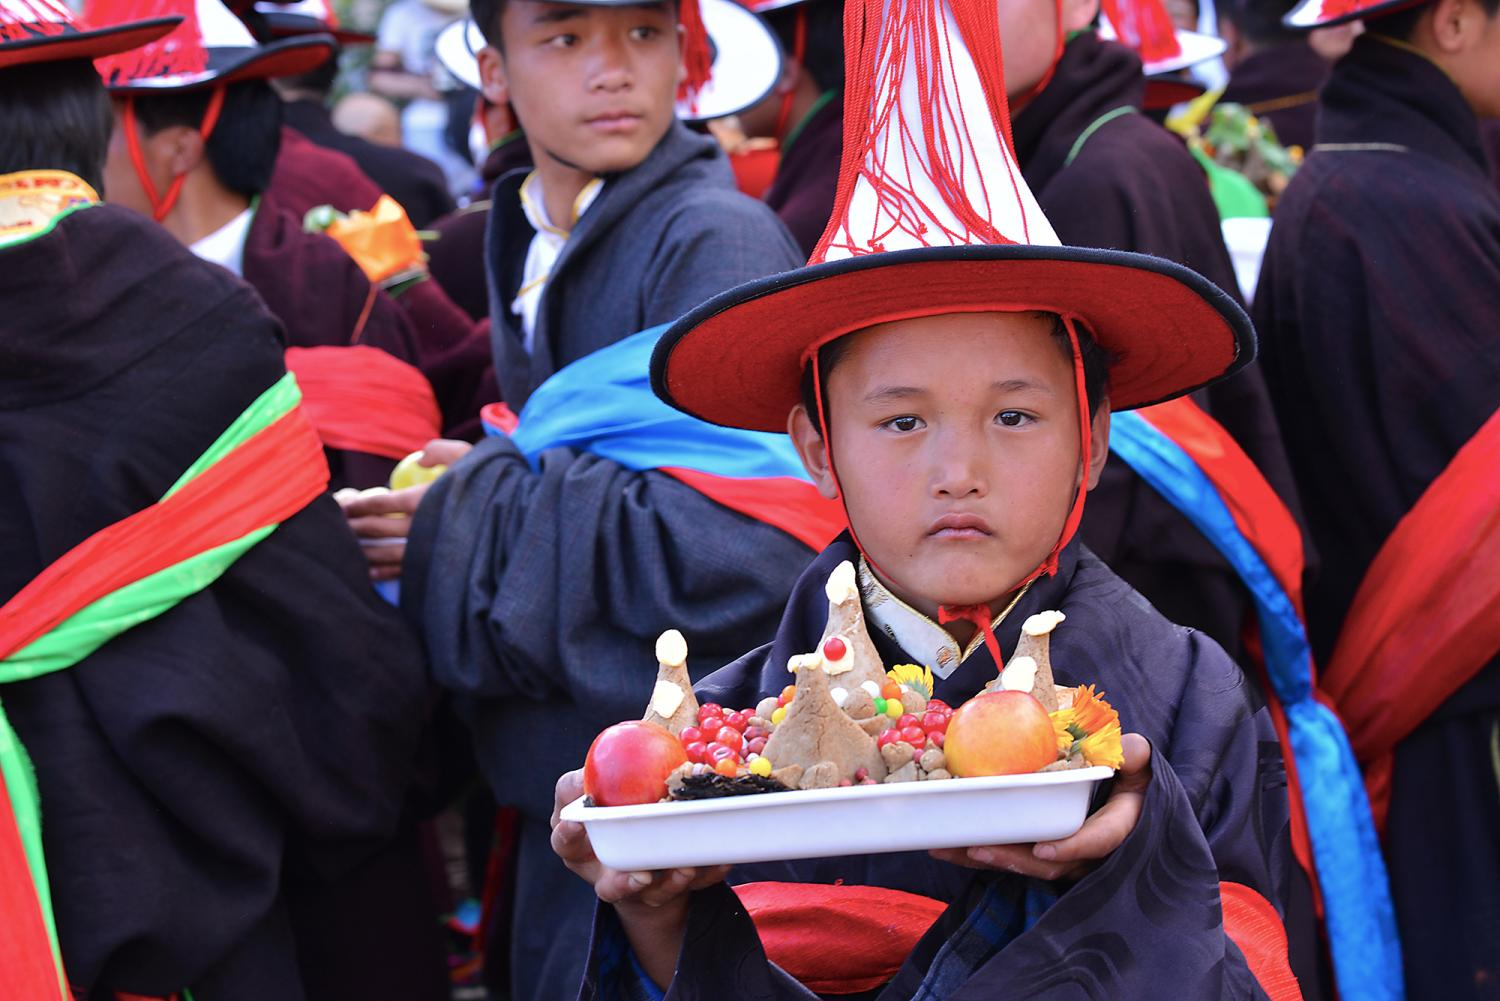 Sang pulpa (bsang phul pa བསང་ཕུད་པ། is the giving and immolation of offerings include Tsampa dough sculptures, khadak scarves, and, most importantly bsang, a scented offering.